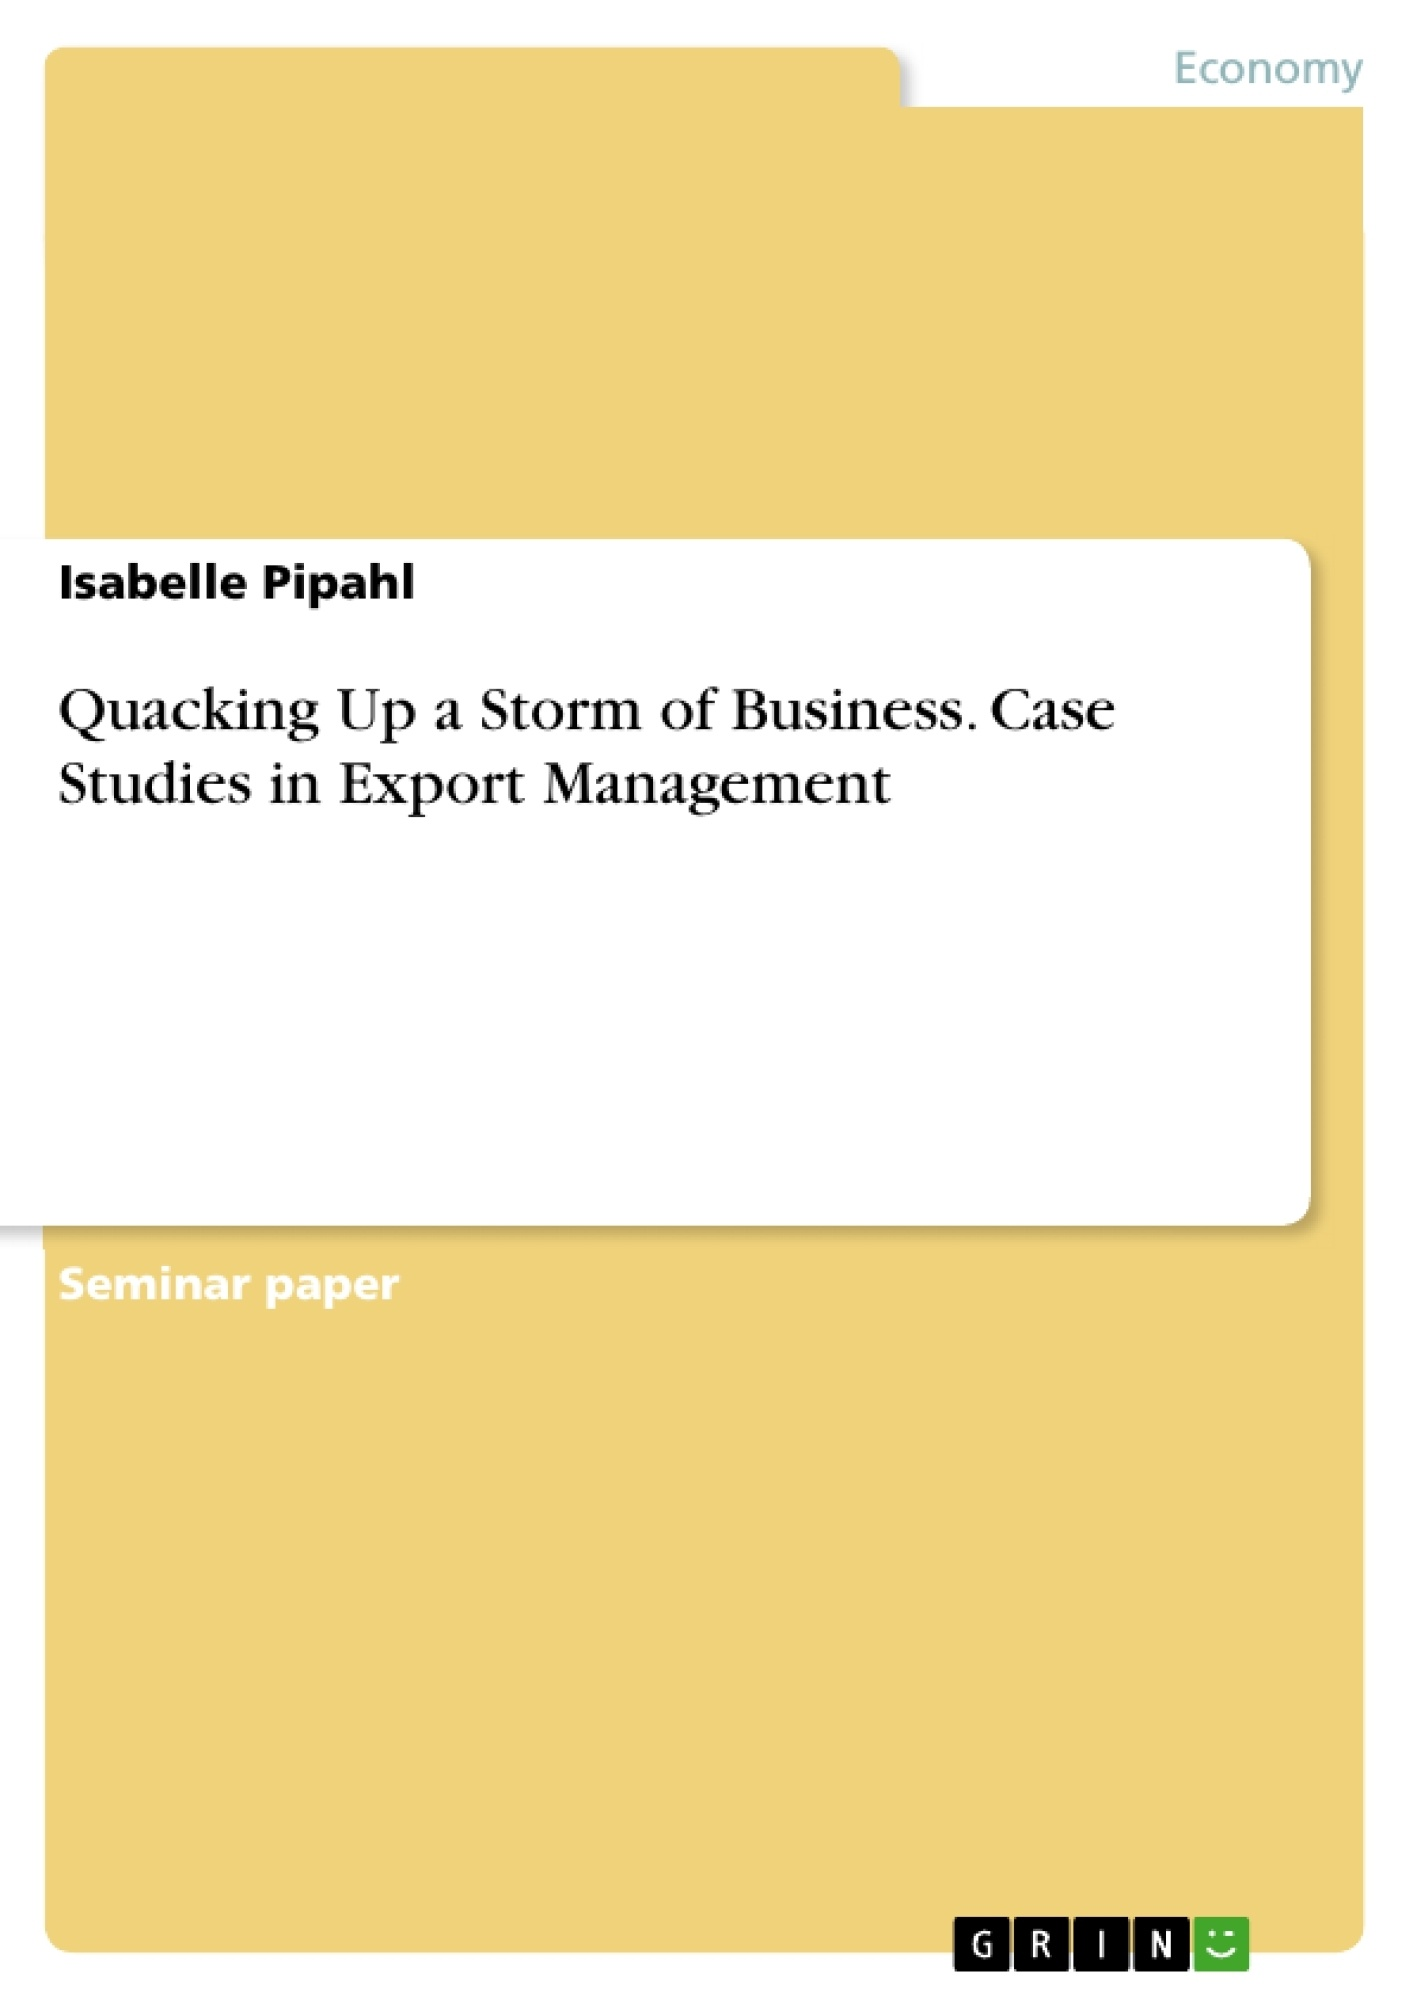 Title: Quacking Up a Storm of Business. Case Studies in Export Management